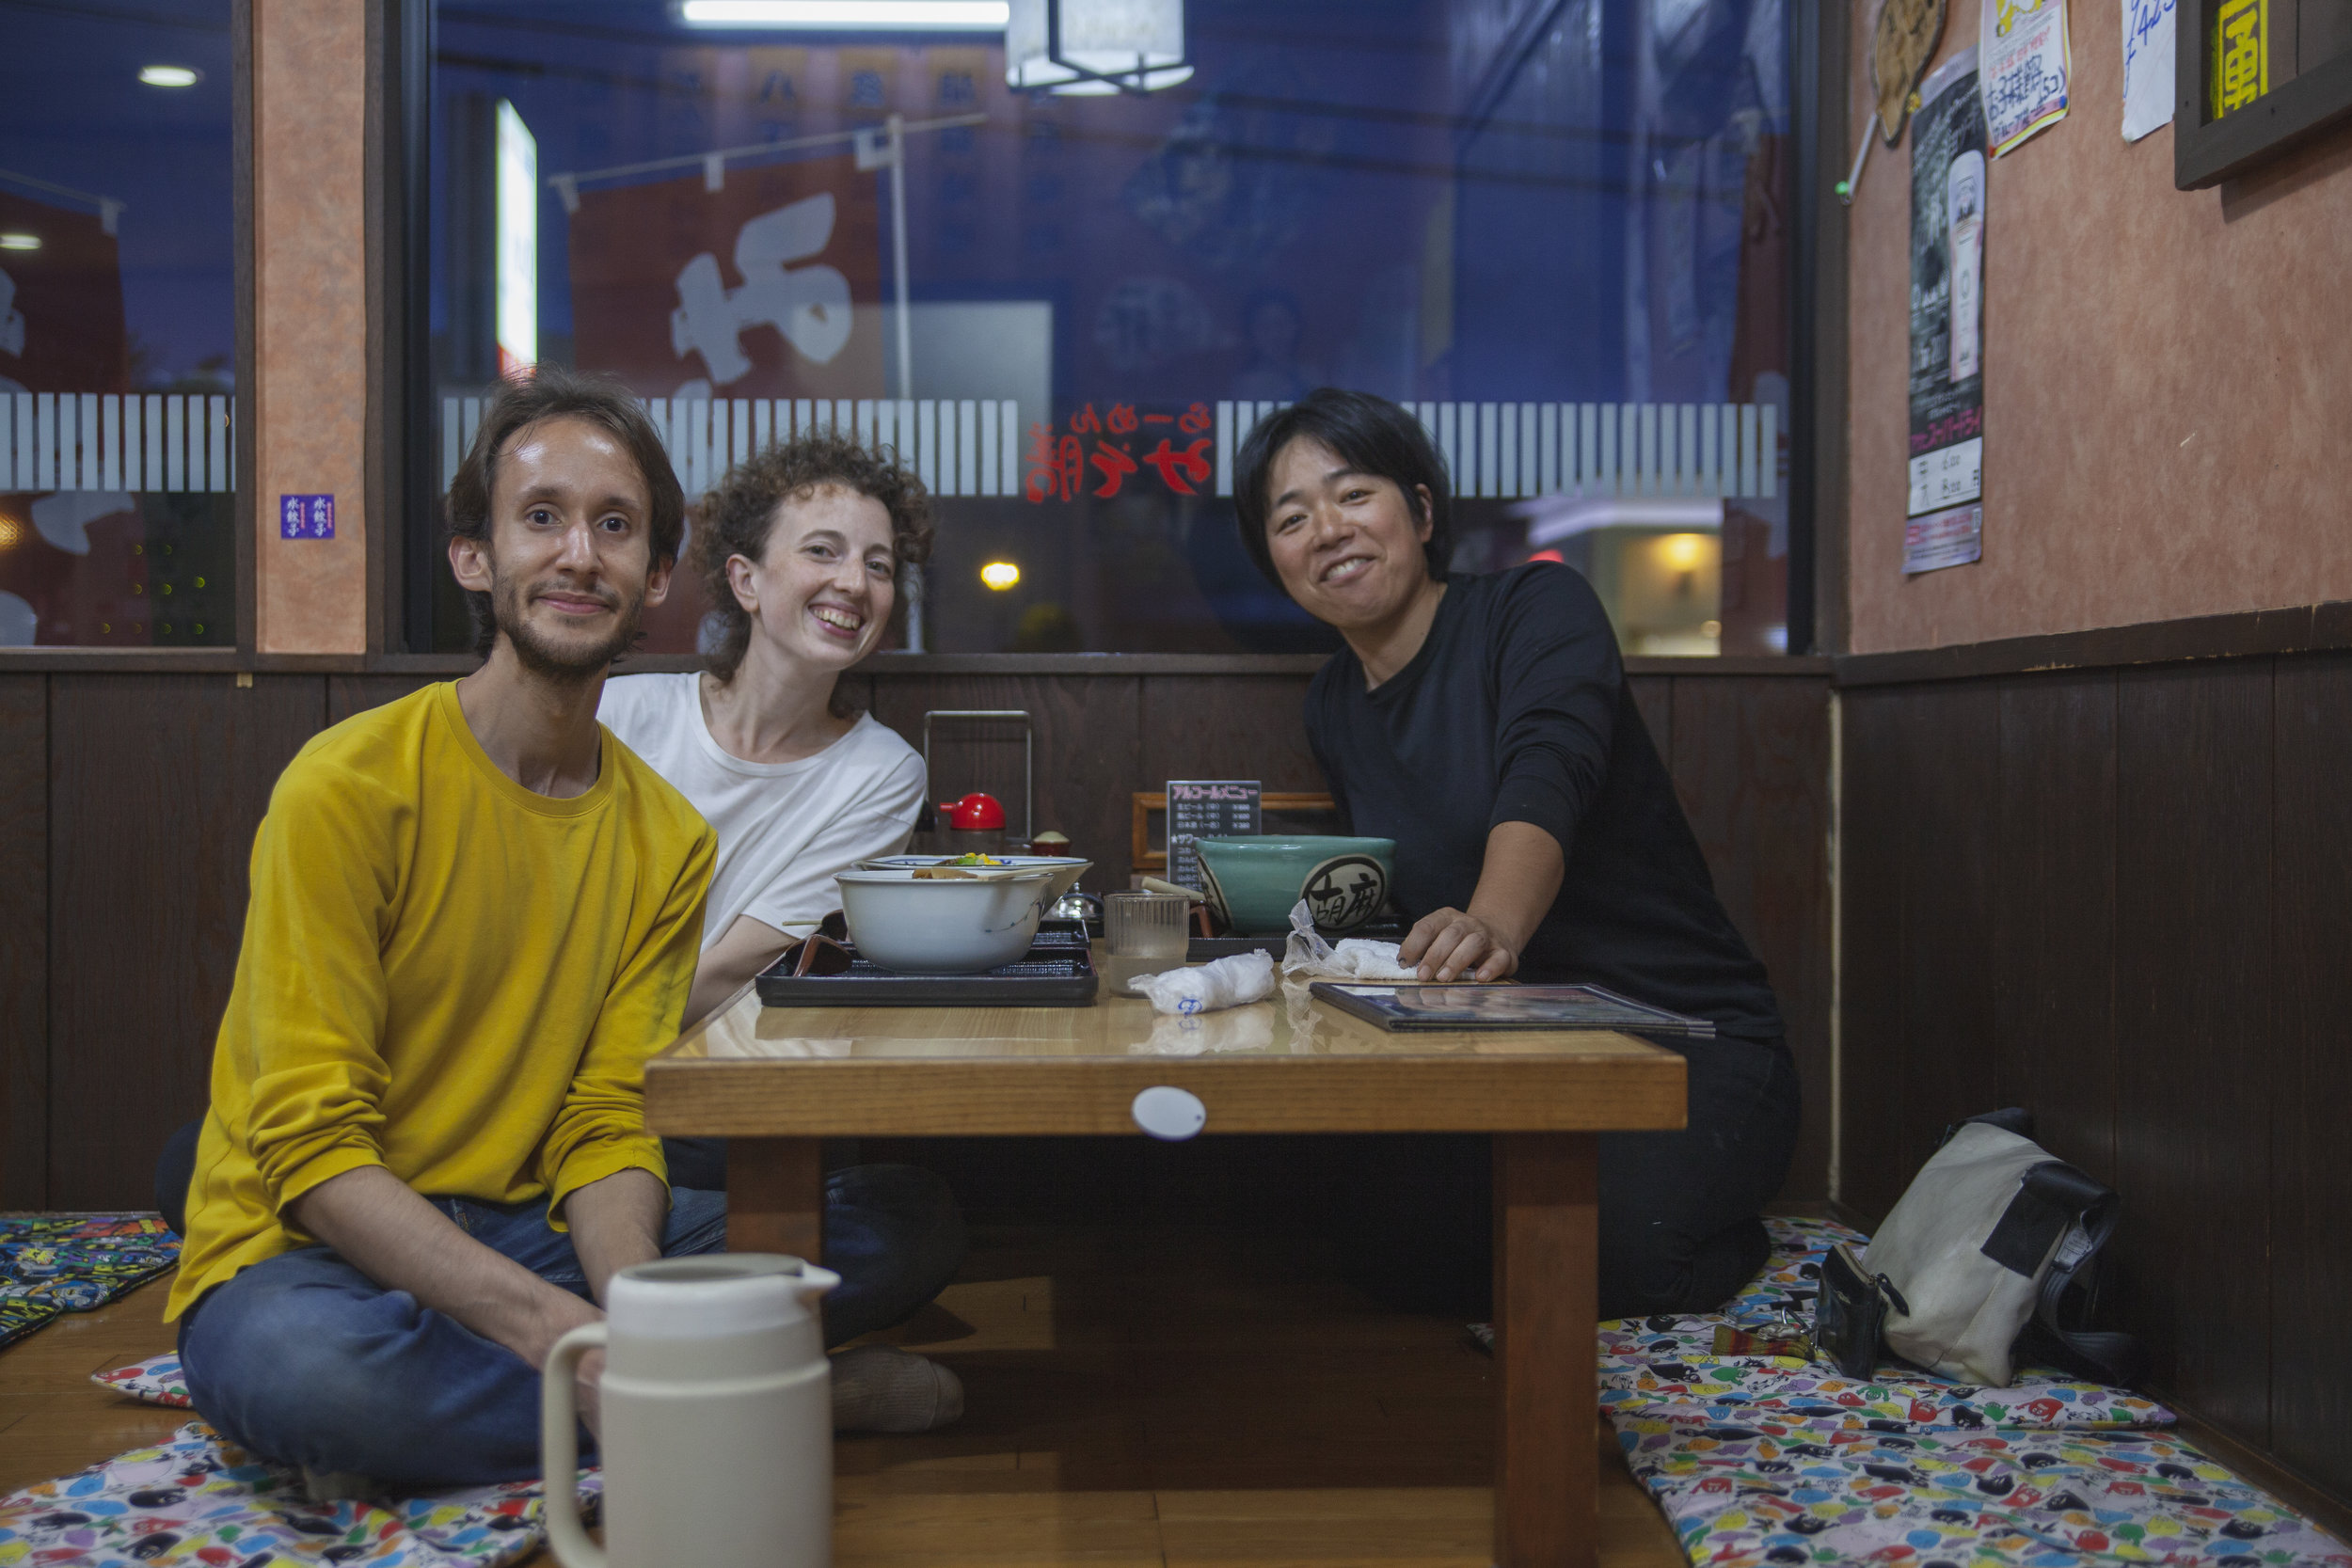 Sharing ramen on a rainy day with our new friend and collaborator Hiromi Hoshino